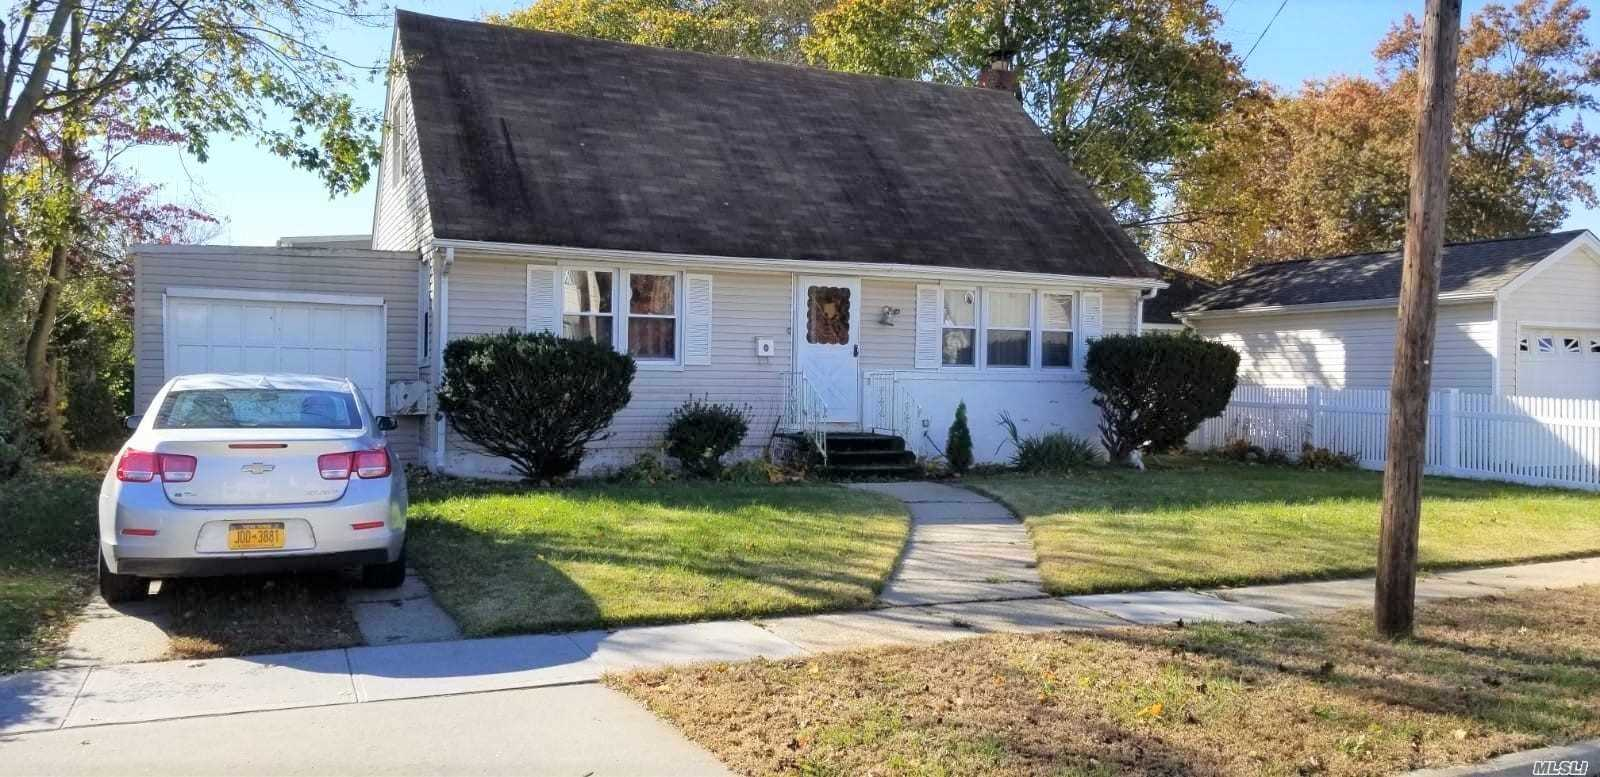 Photo of home for sale at 166 Booth St, Hempstead NY